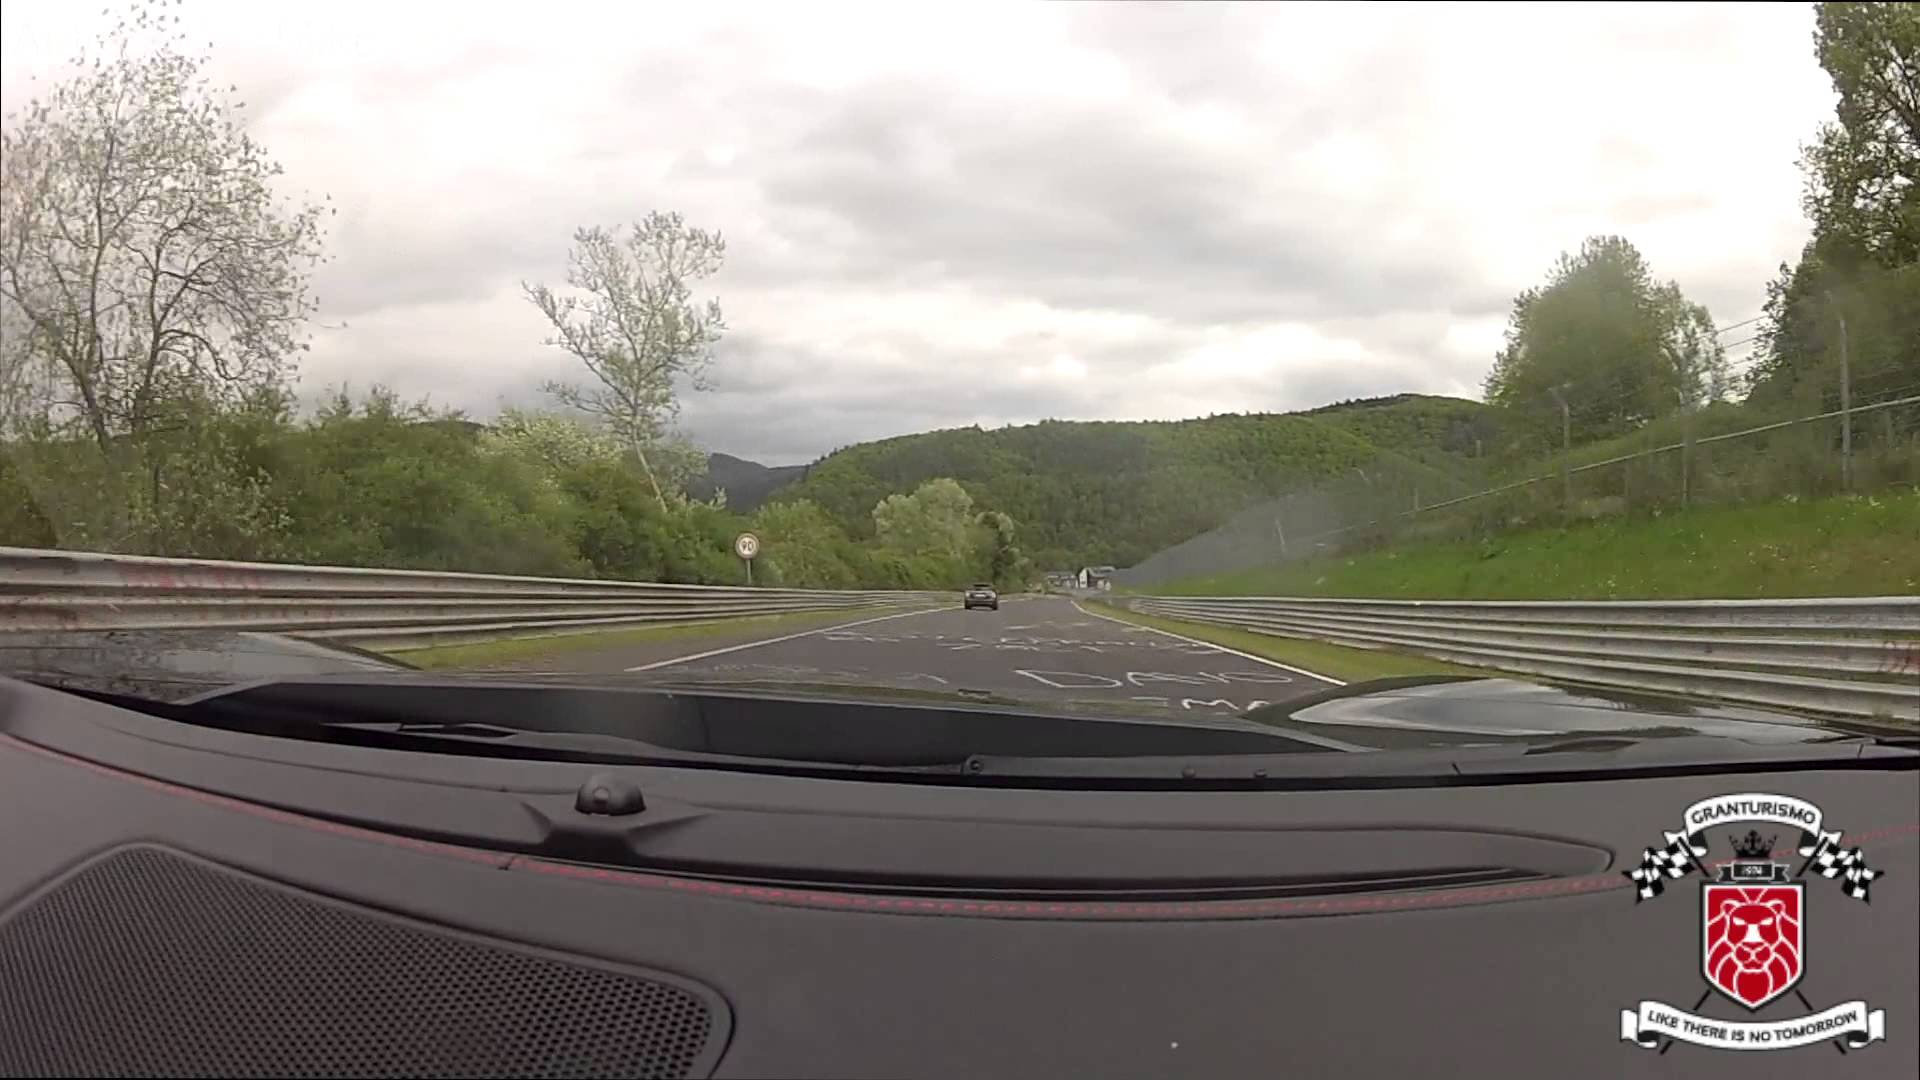 2014 C7 Corvette Stingray on the Nürburgring